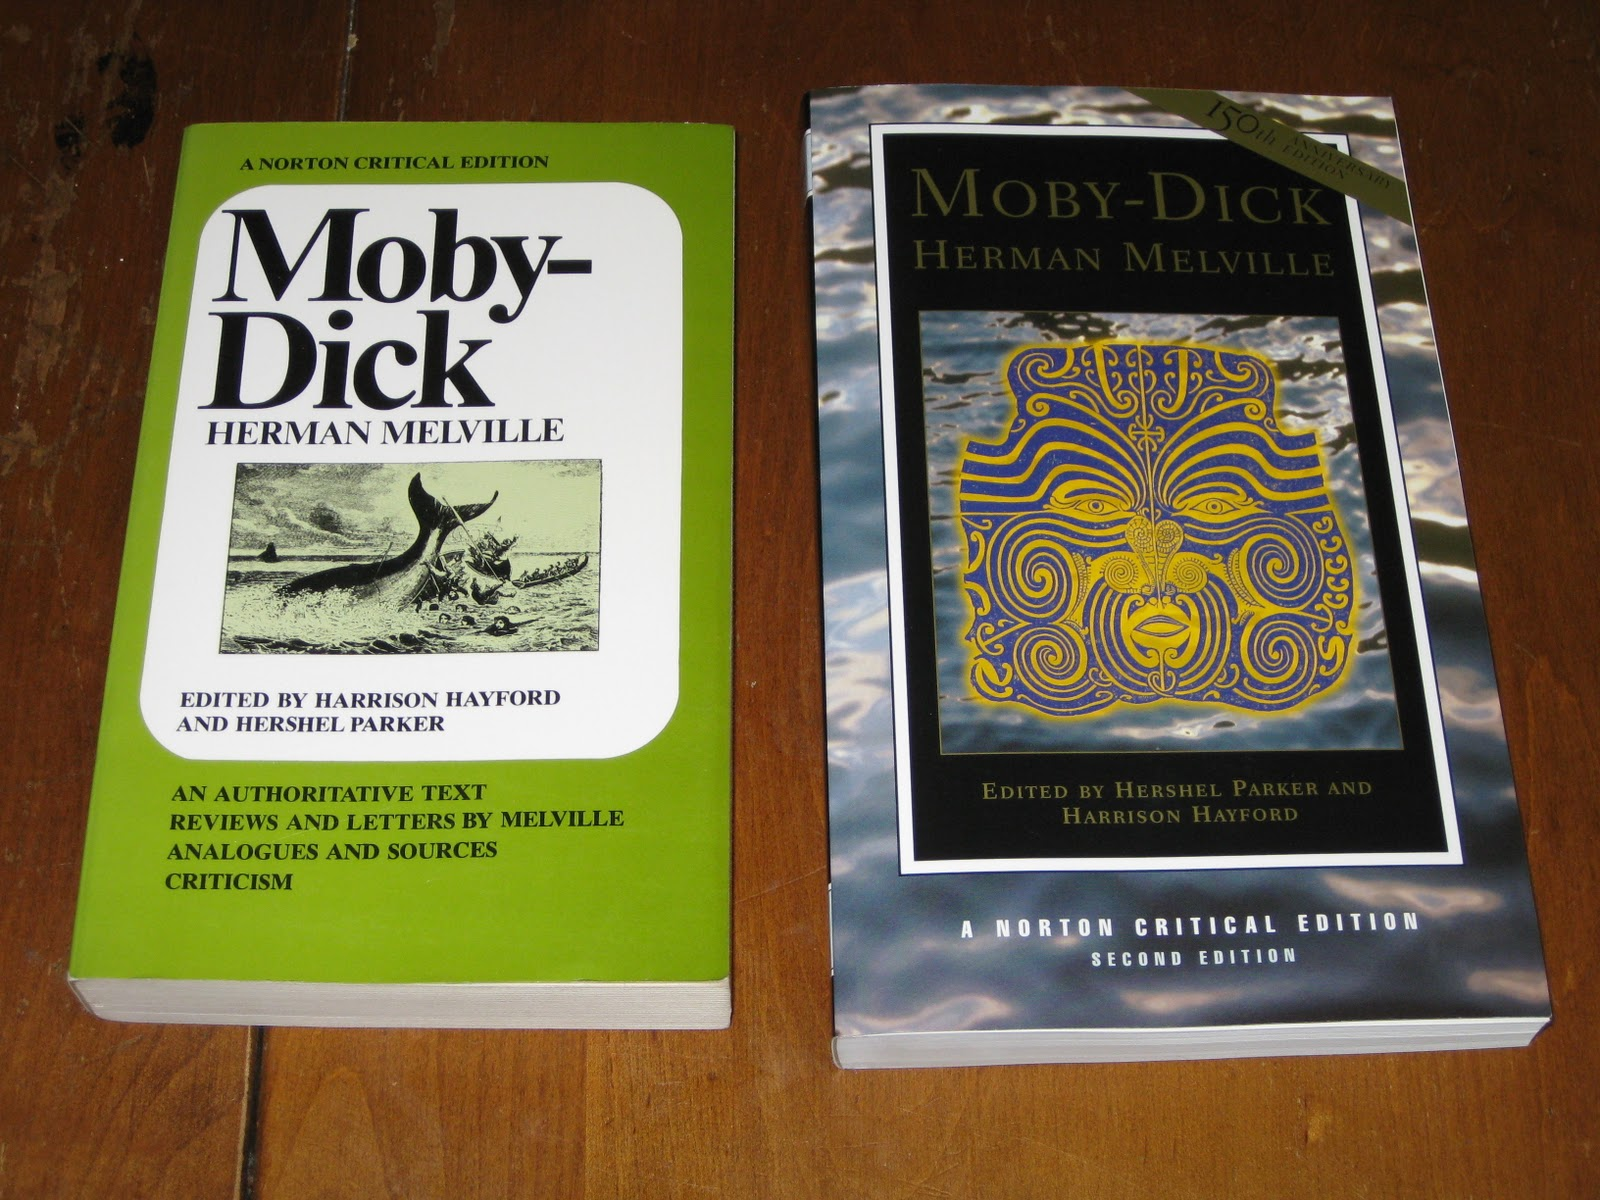 moby dick essays moby dick or the card game illuminating games my  ahab beckons norton critical editions moby dick norton critical editions moby dick